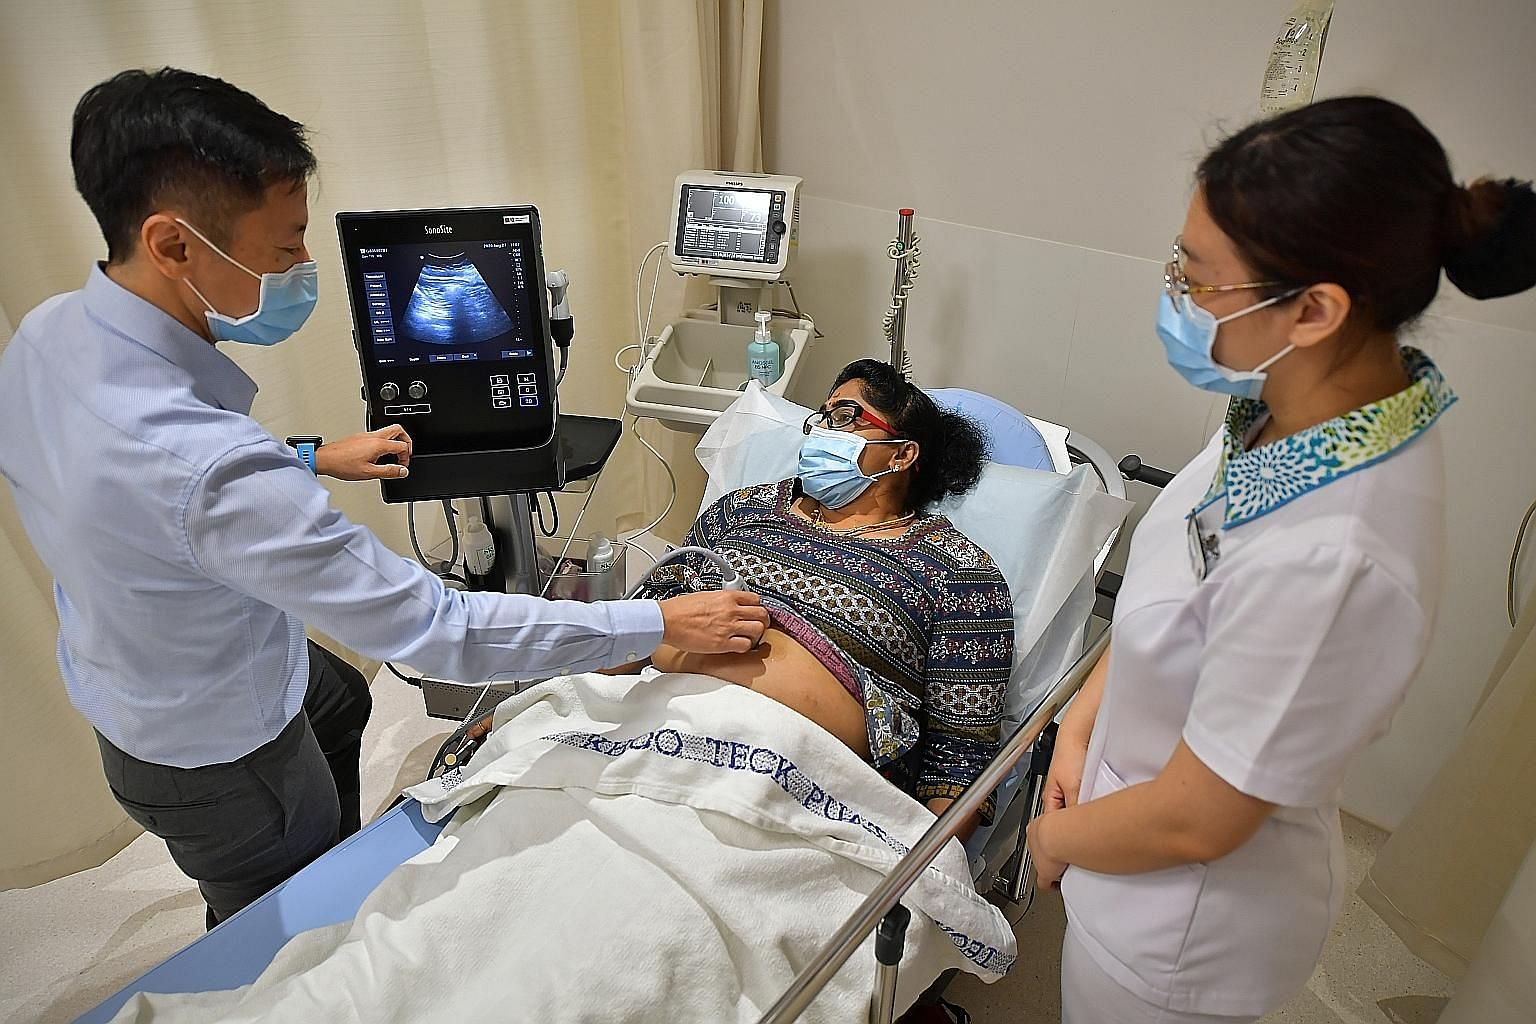 The Urgent Care Centre @ Admiralty provides services such as ultrasound scans, treatment for fractures and more. The centre has three consultation rooms, and an observation area with two beds and two recliners, among other facilities, to treat reside